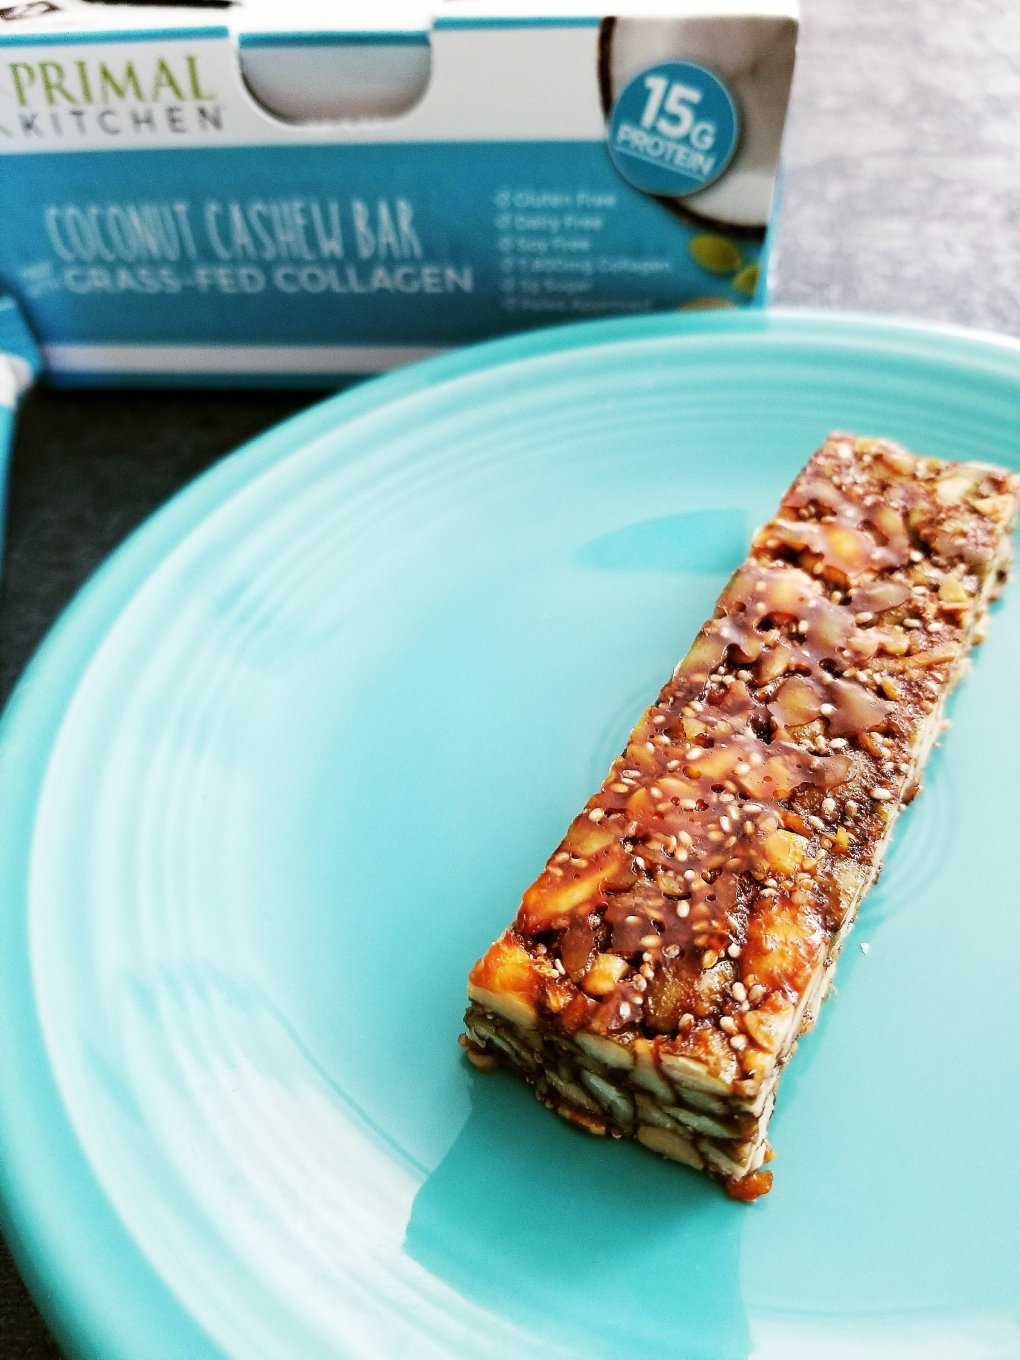 Primal Kitchen Coconut Cashew Collagen Bars